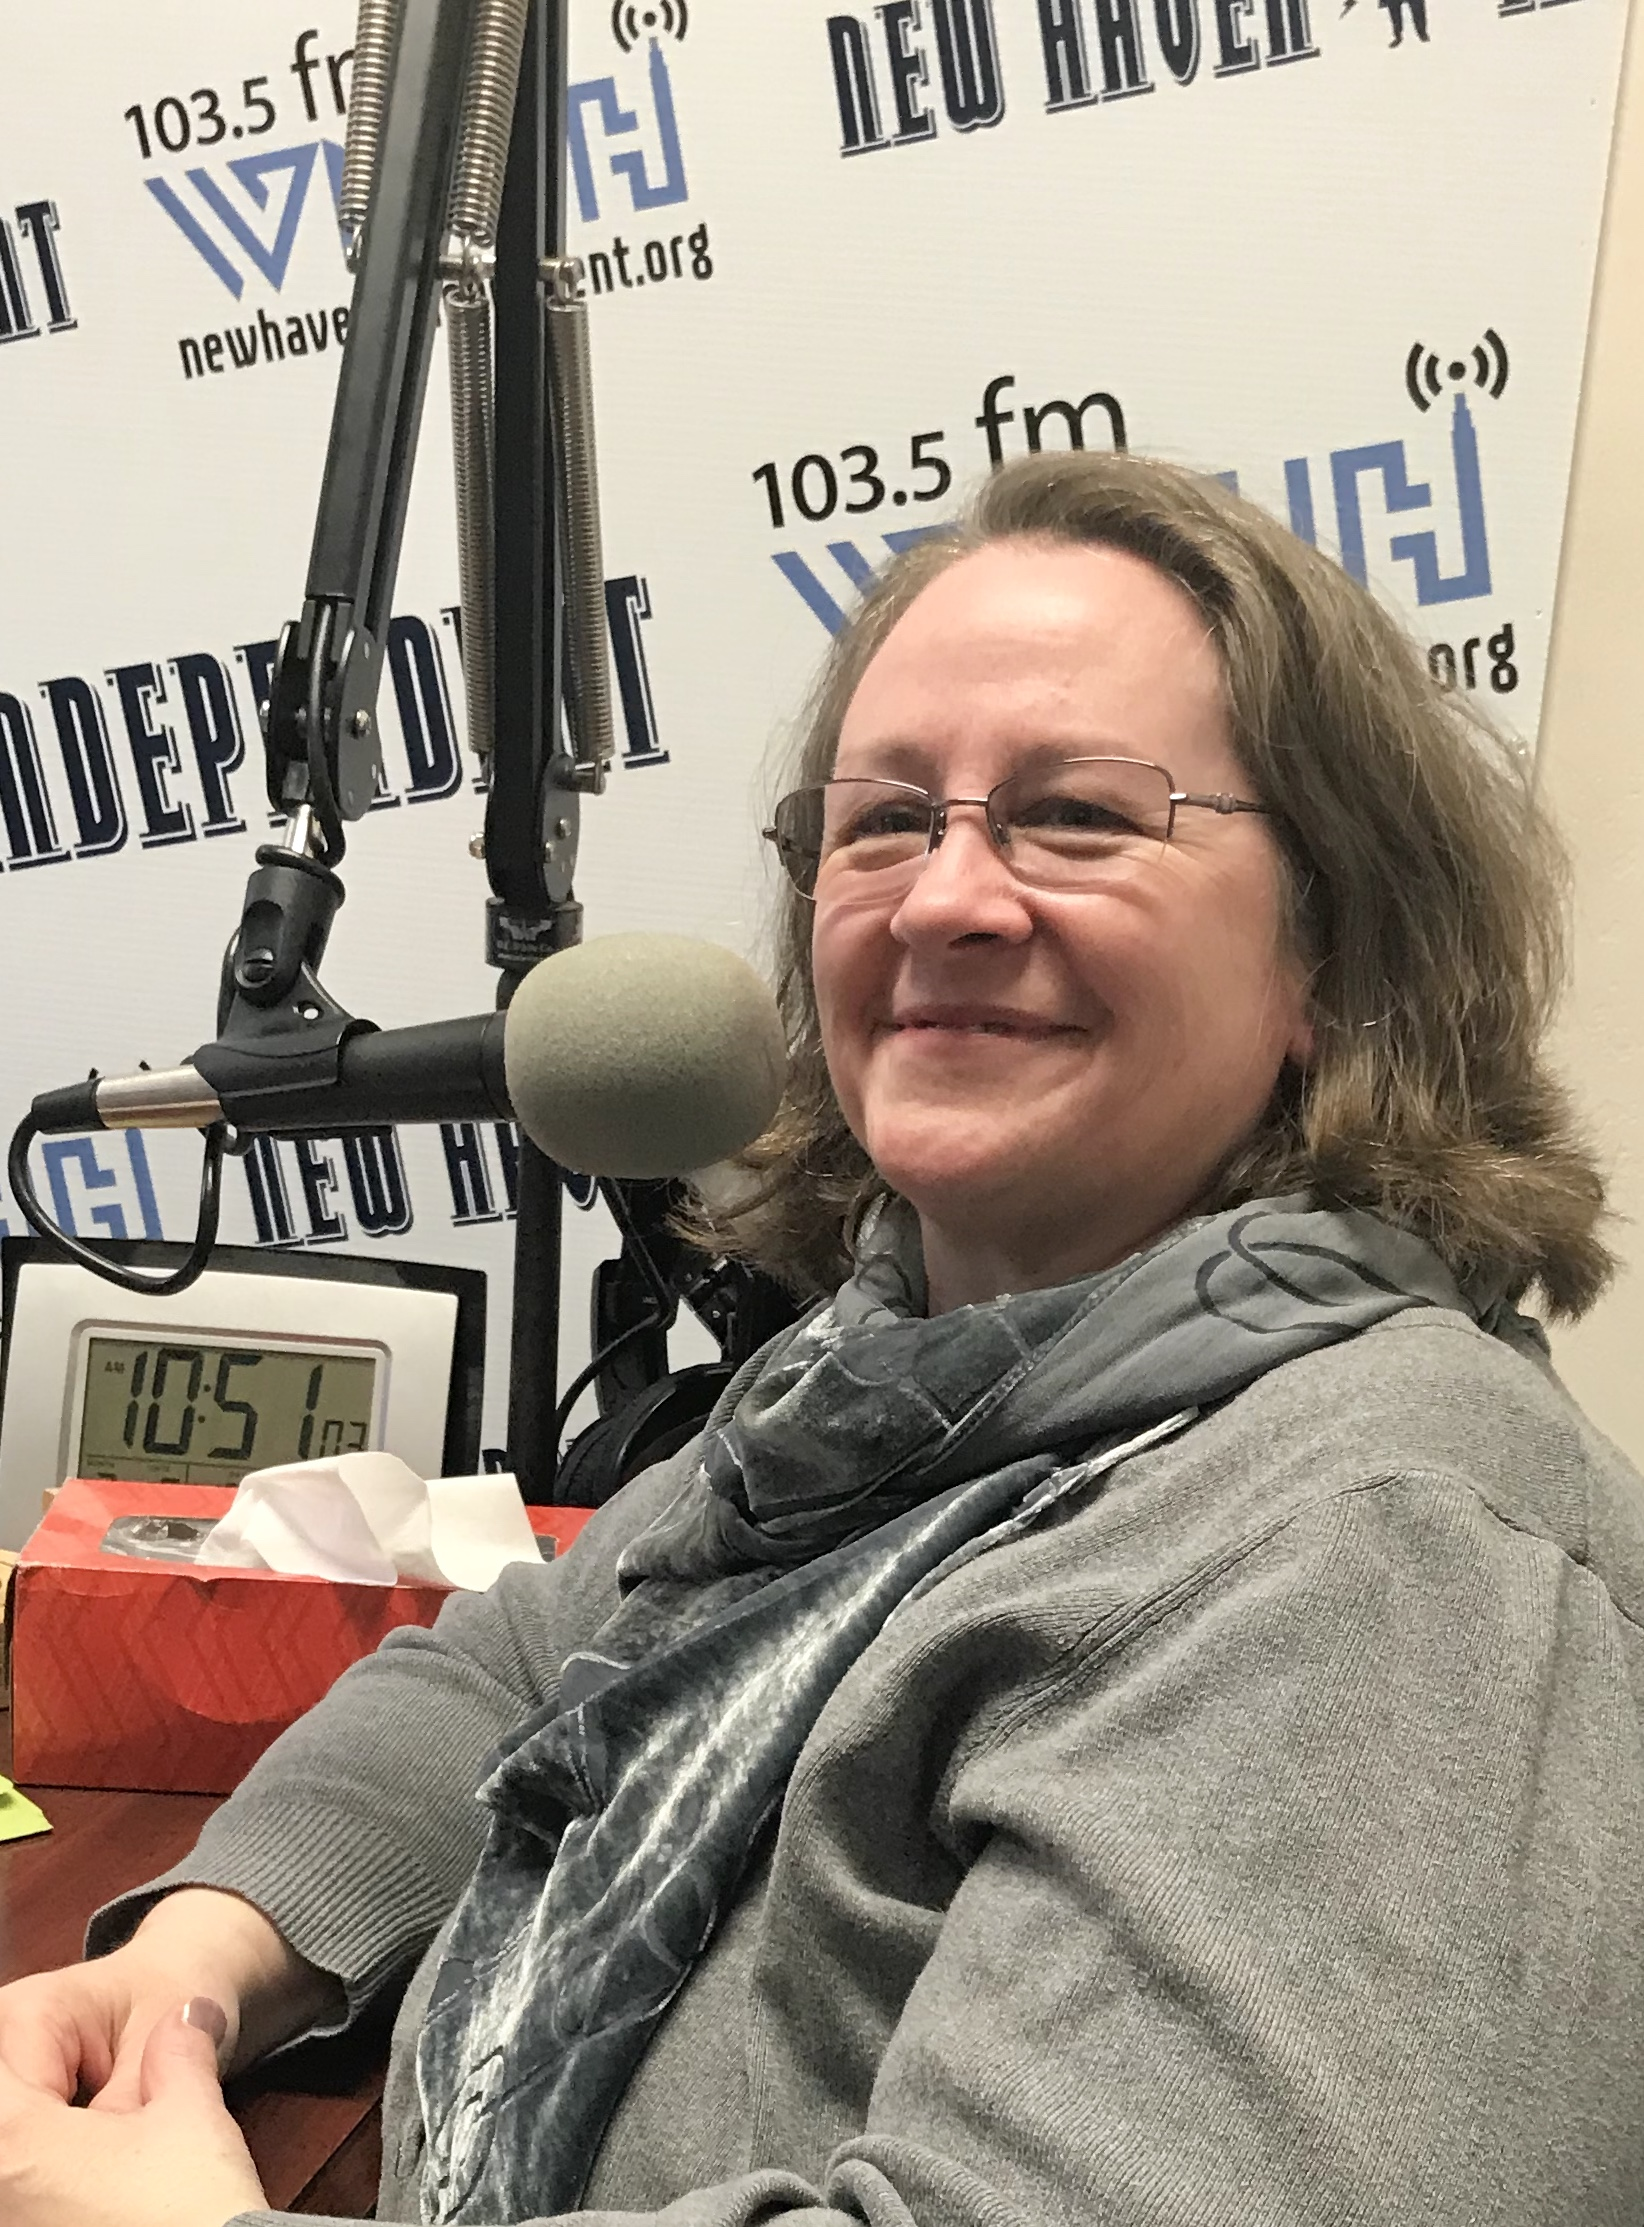 Host Tom Ficklin speaks with Lori Martin, Site Direct of Food Rescue US - New Haven. To find more information go to foodrescue.us/.